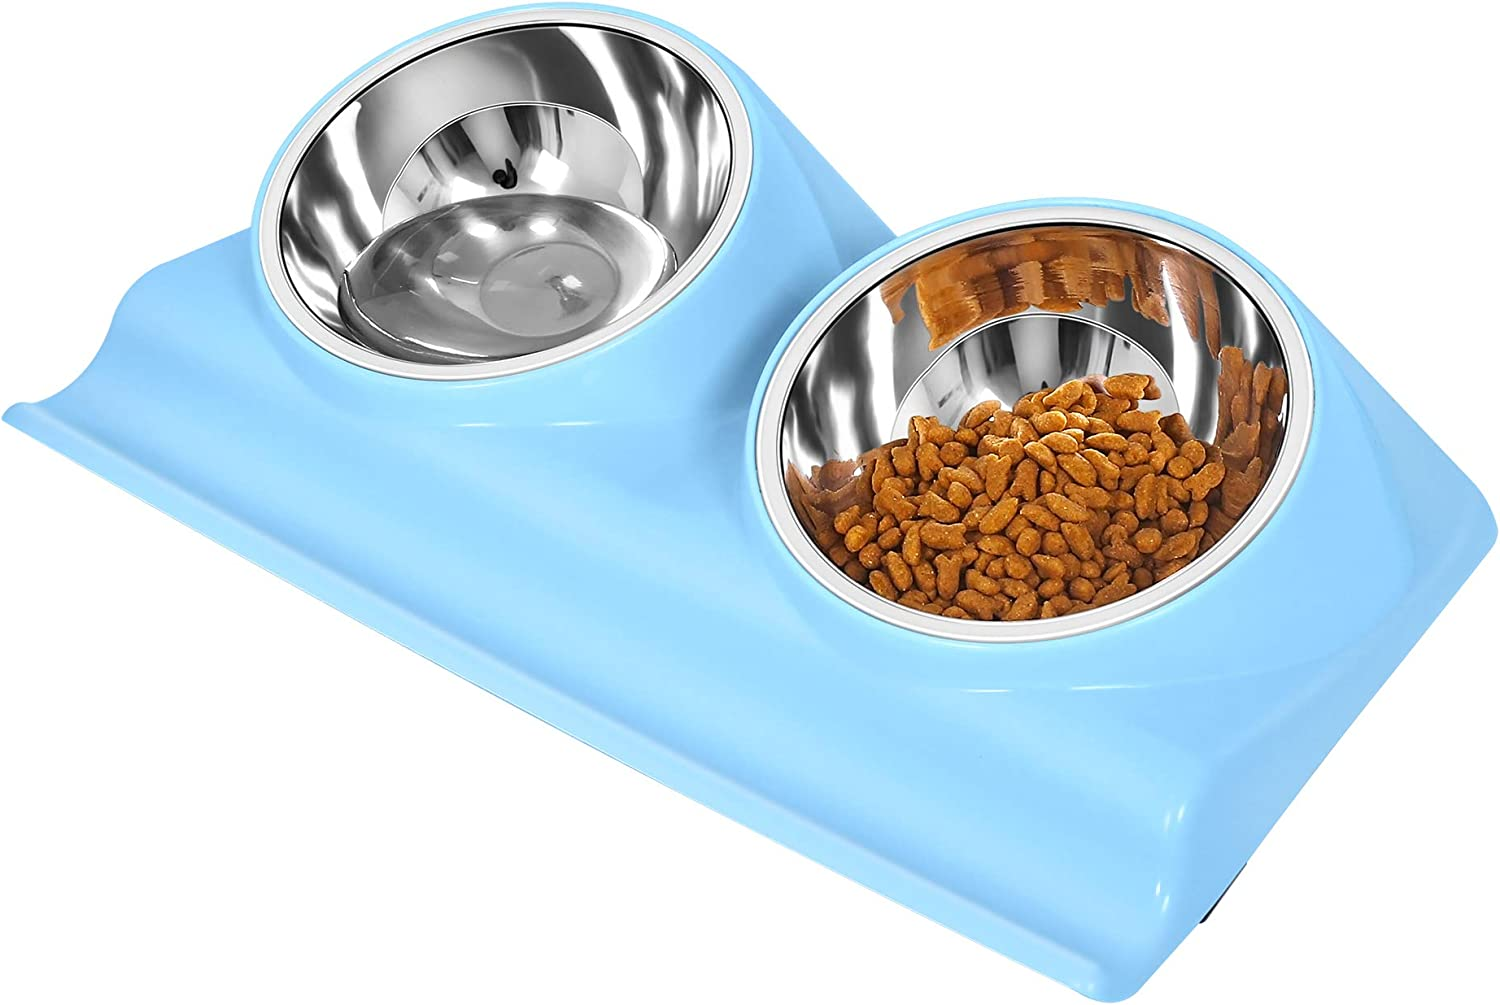 UPSKY Dog Cat Bowls Double Raised Pet Bowls, Elevated Cat Bowls, with Anti-Slip Resin Station, Stainless Steel Pet Feeder Bowls for All Small to Large Cats